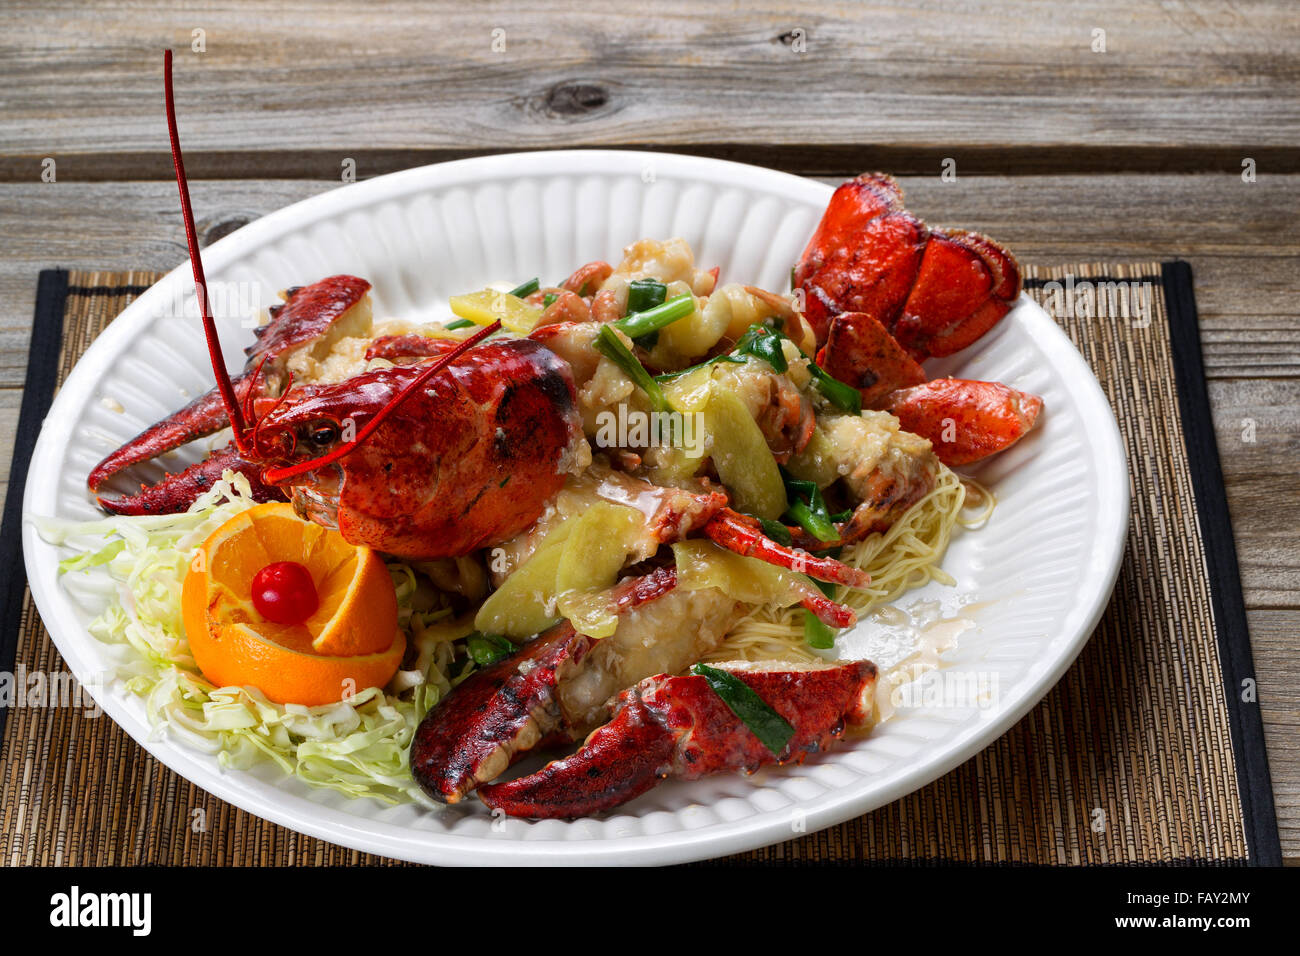 Close up front view of a freshly cooked whole Maine lobster covered with herbs, onions, and sauce on white plate. - Stock Image